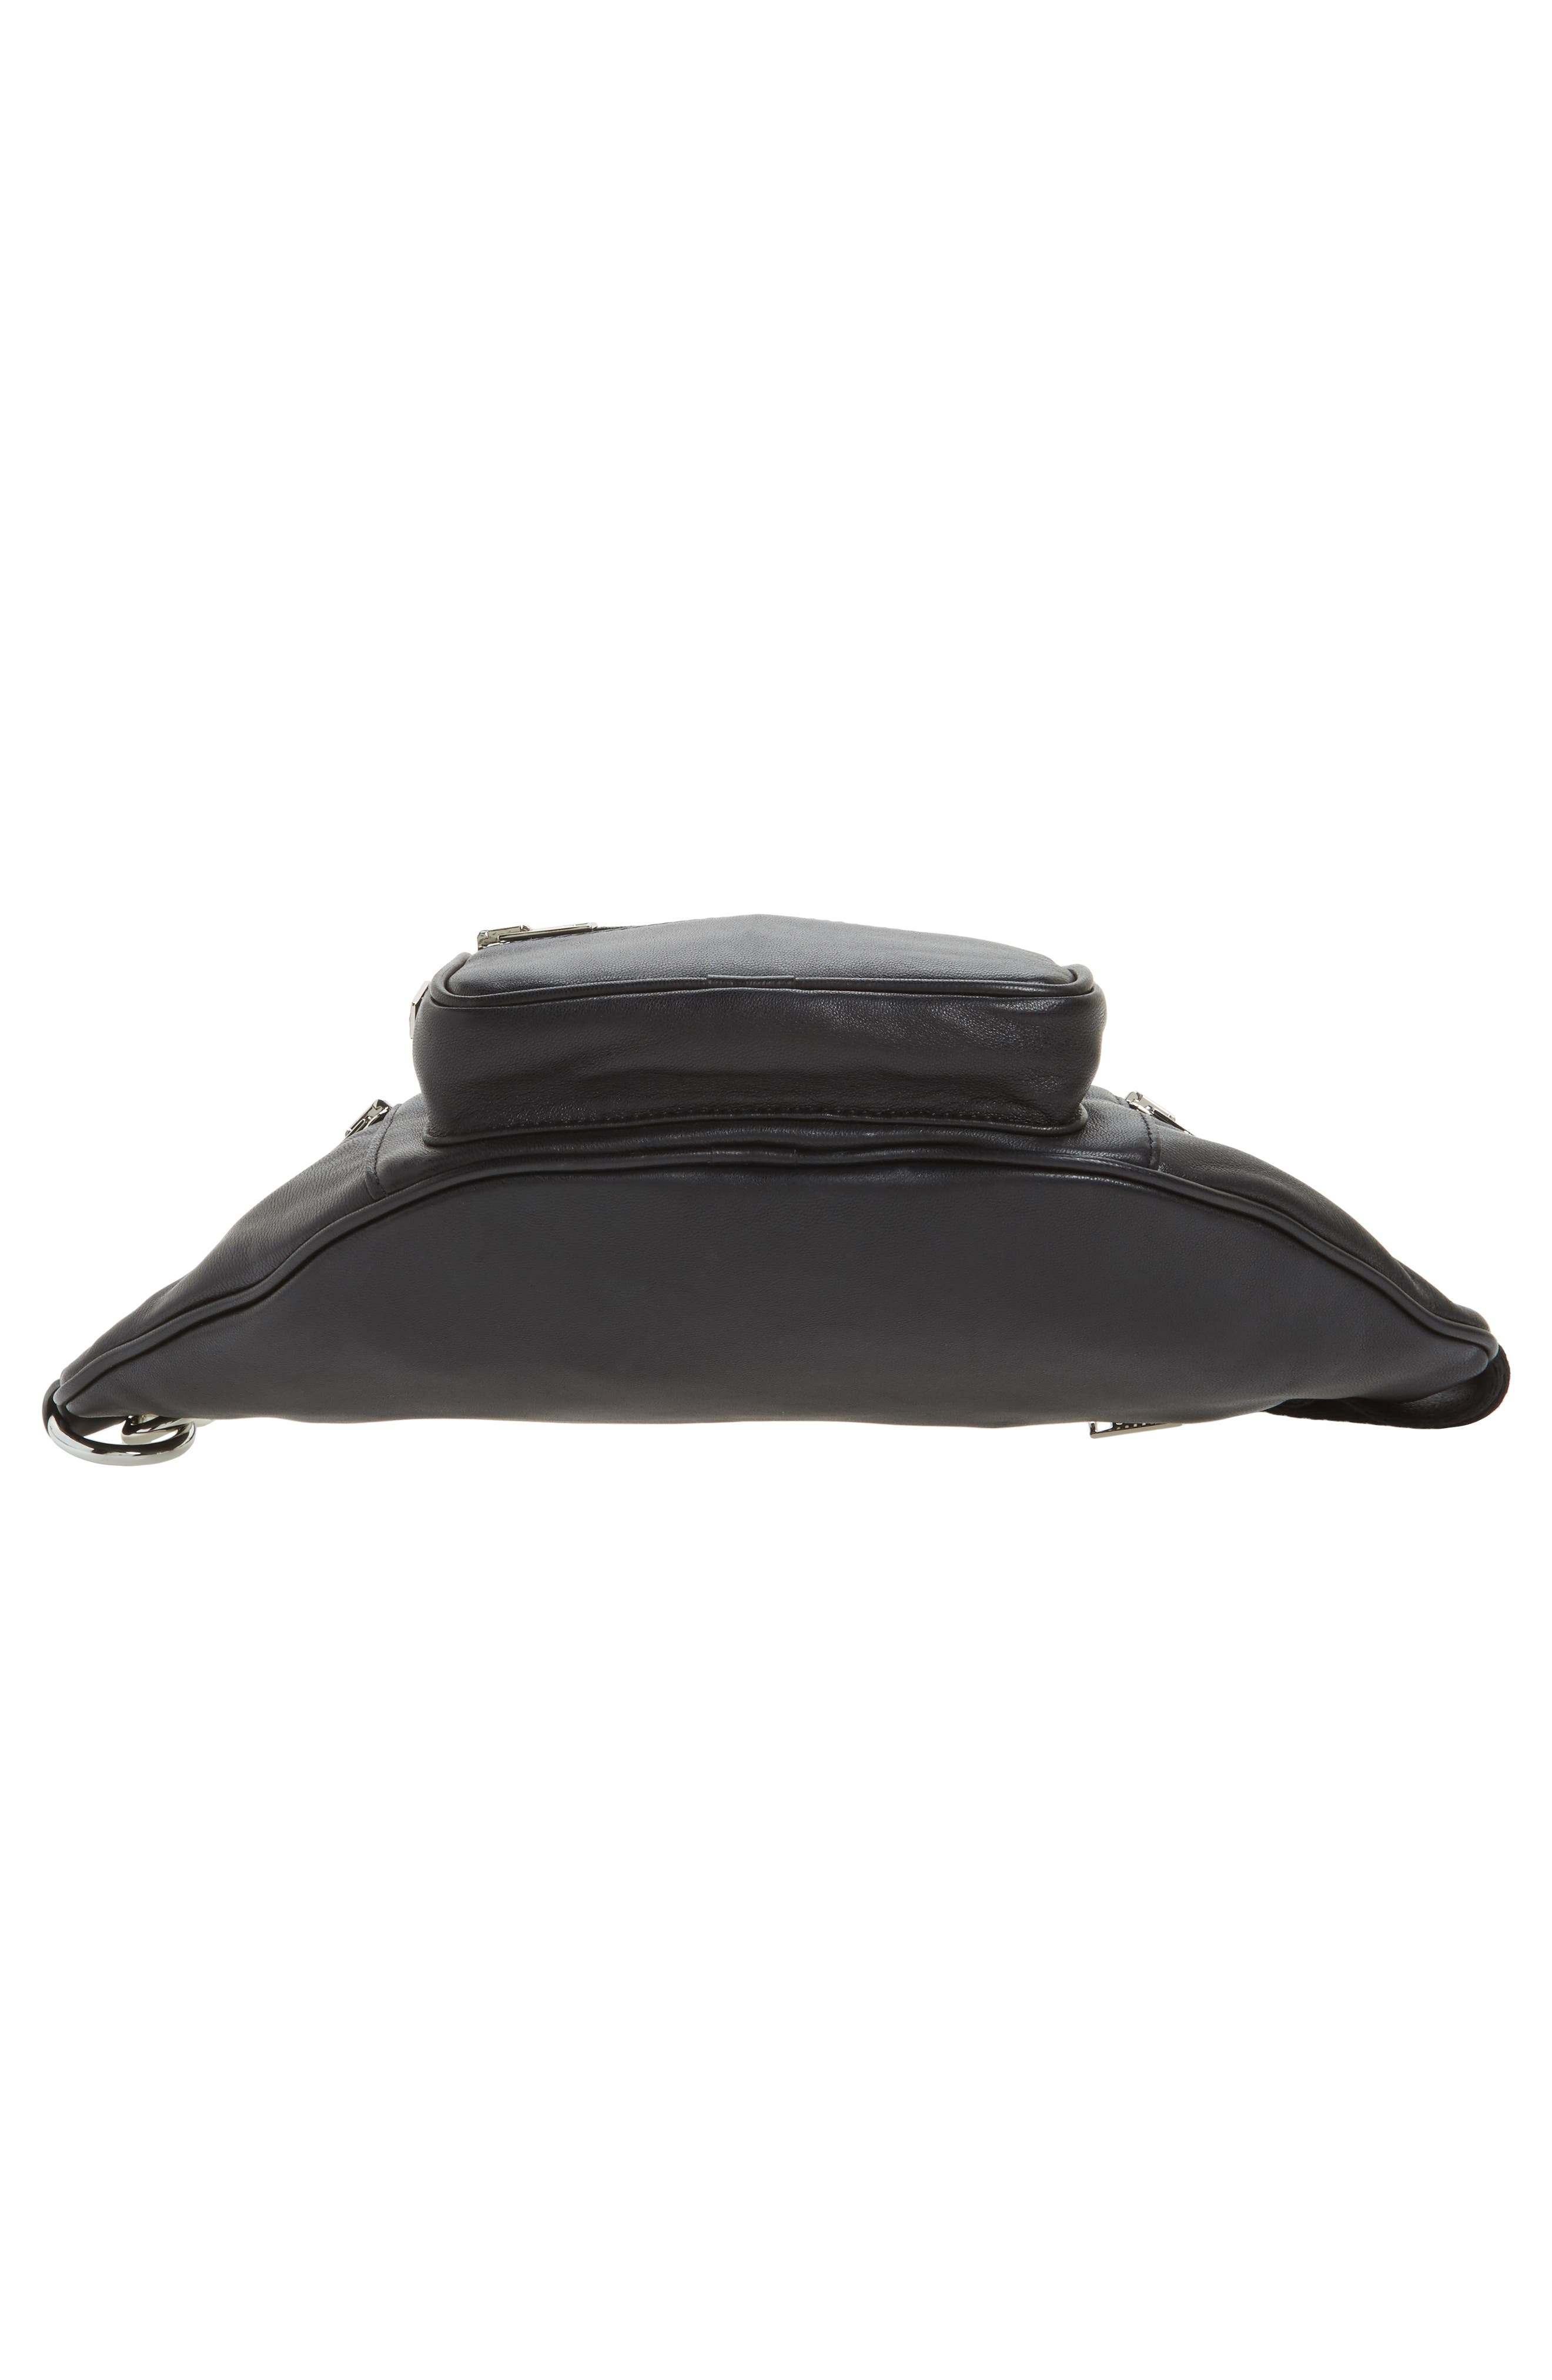 Washed Leather Fanny Pack,                             Alternate thumbnail 6, color,                             Black